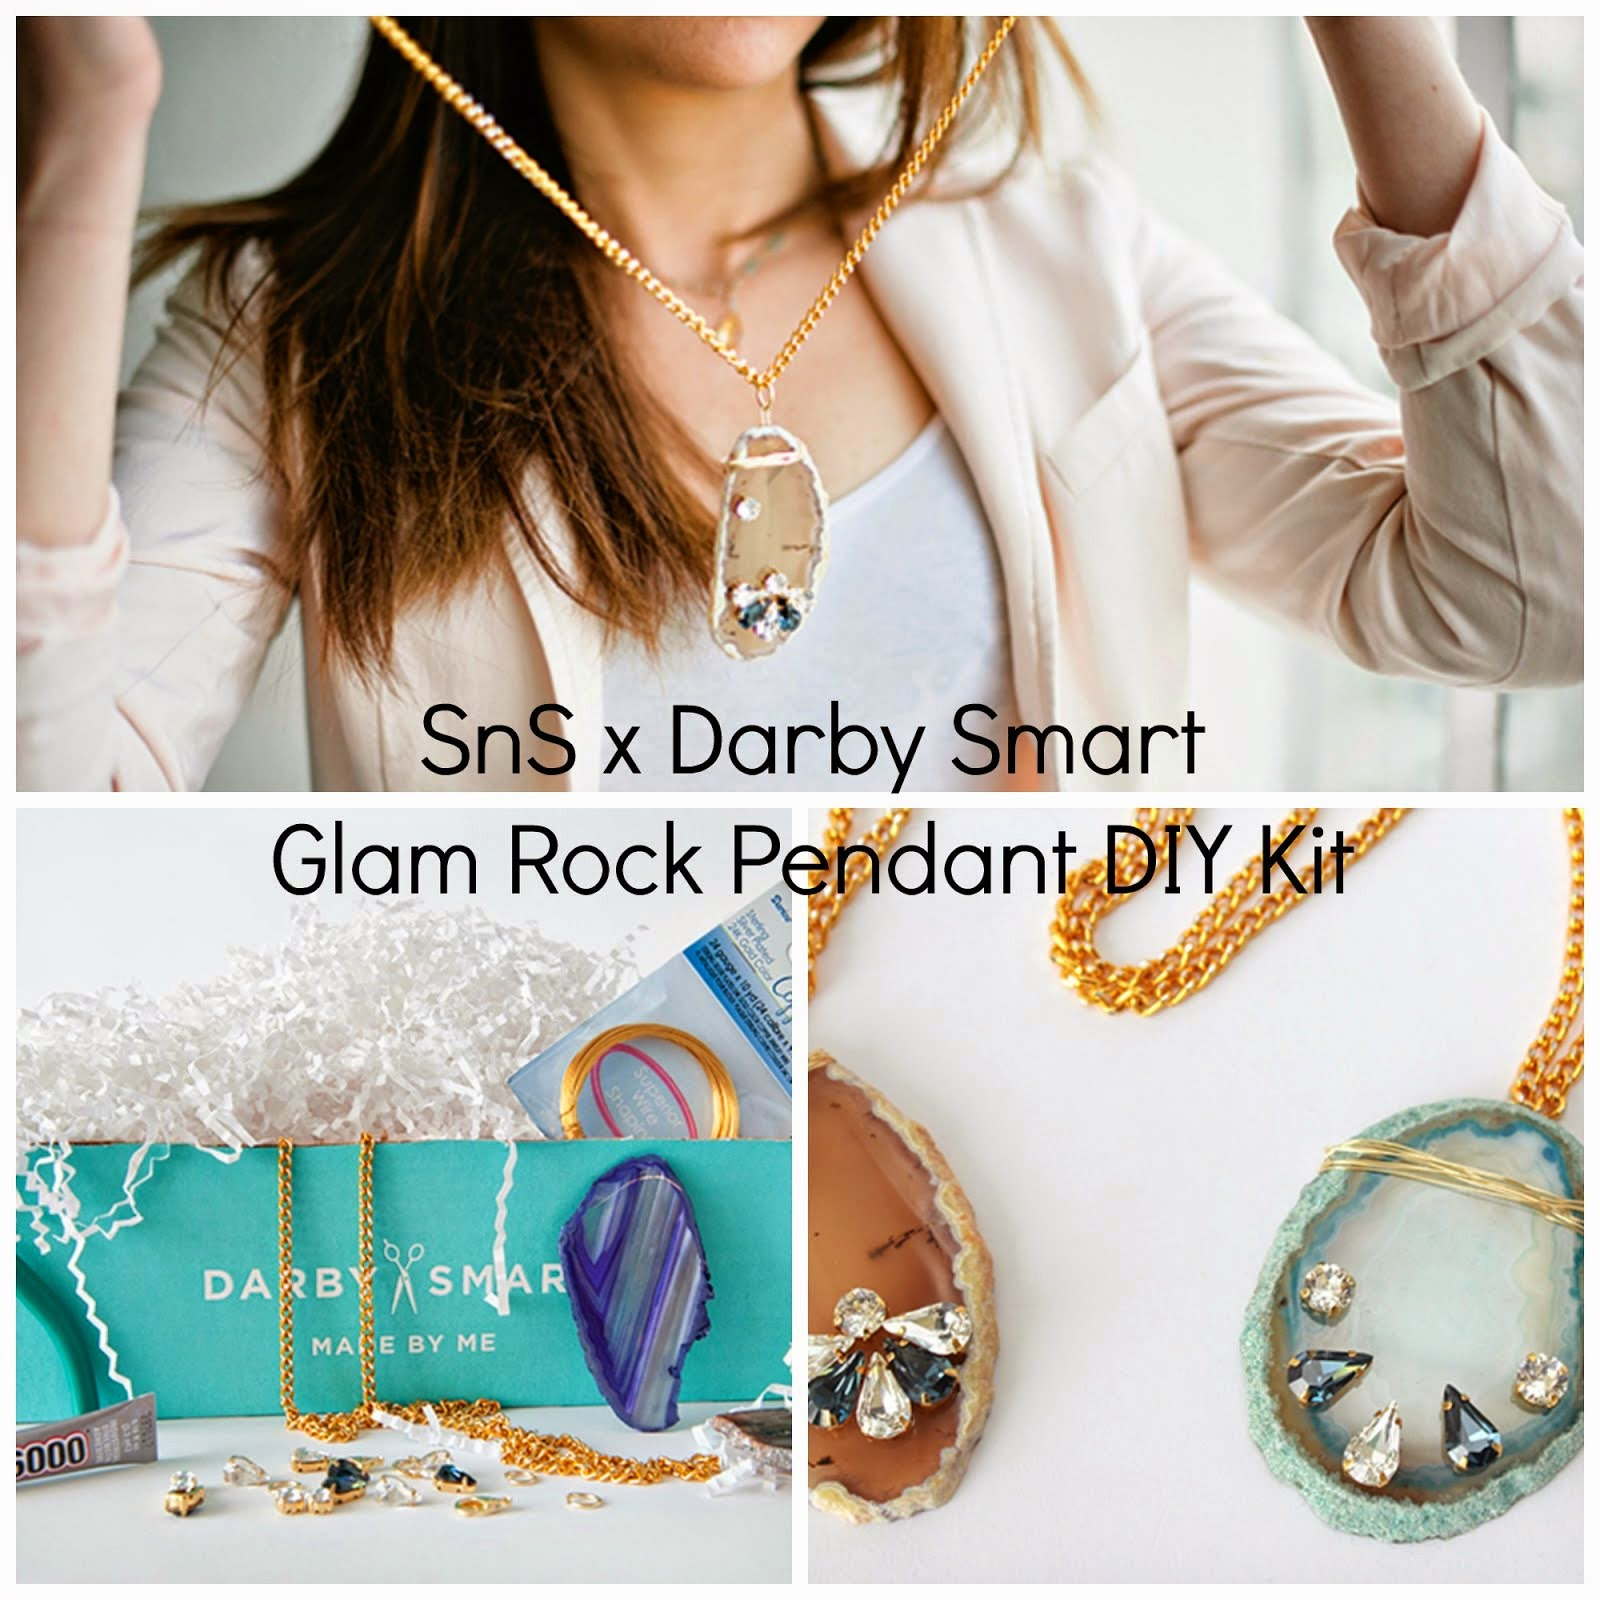 SnS x Darby Smart Glam Rock Pendant DIY Kit